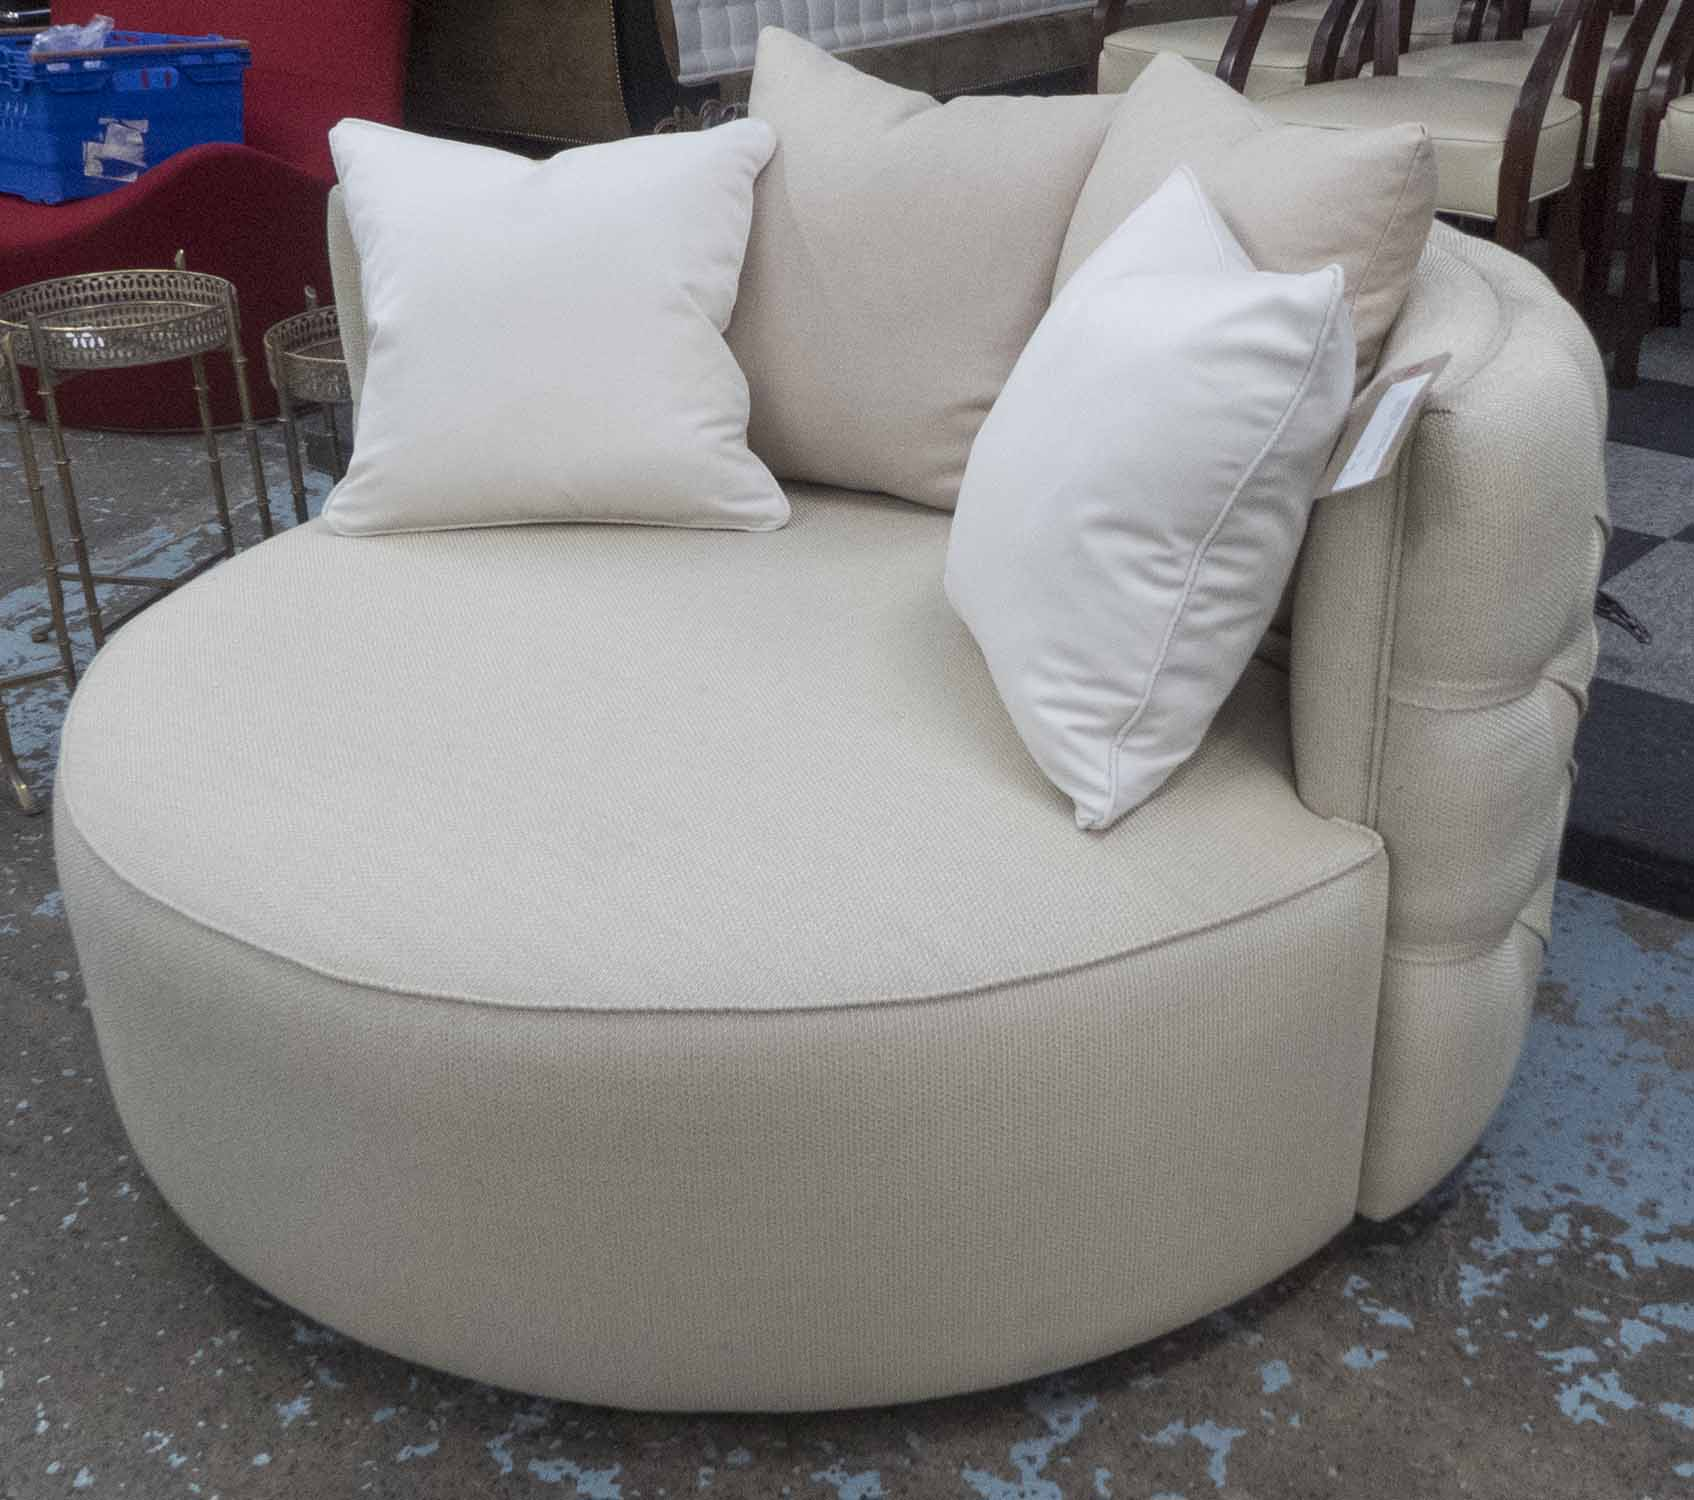 Lot 34 - ROUND SOFA, in a beige fabric, external buttoned back, on an ebonised swivel support, 135cm diam.